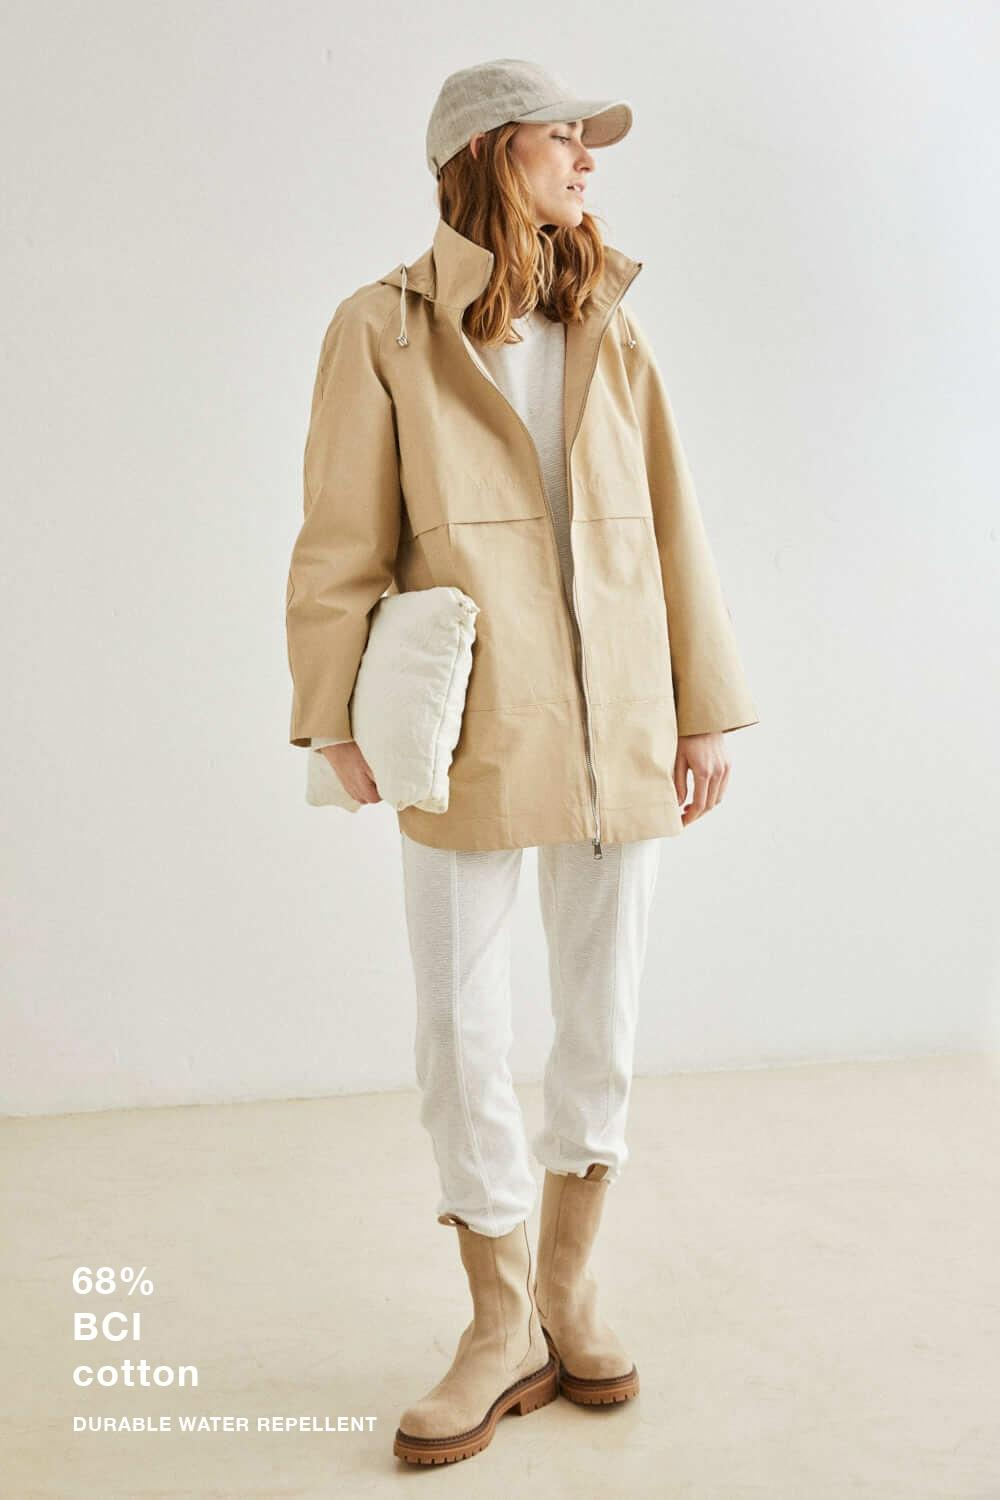 PARKA CON CAPUCHA, ESEOESE, REF. 109535